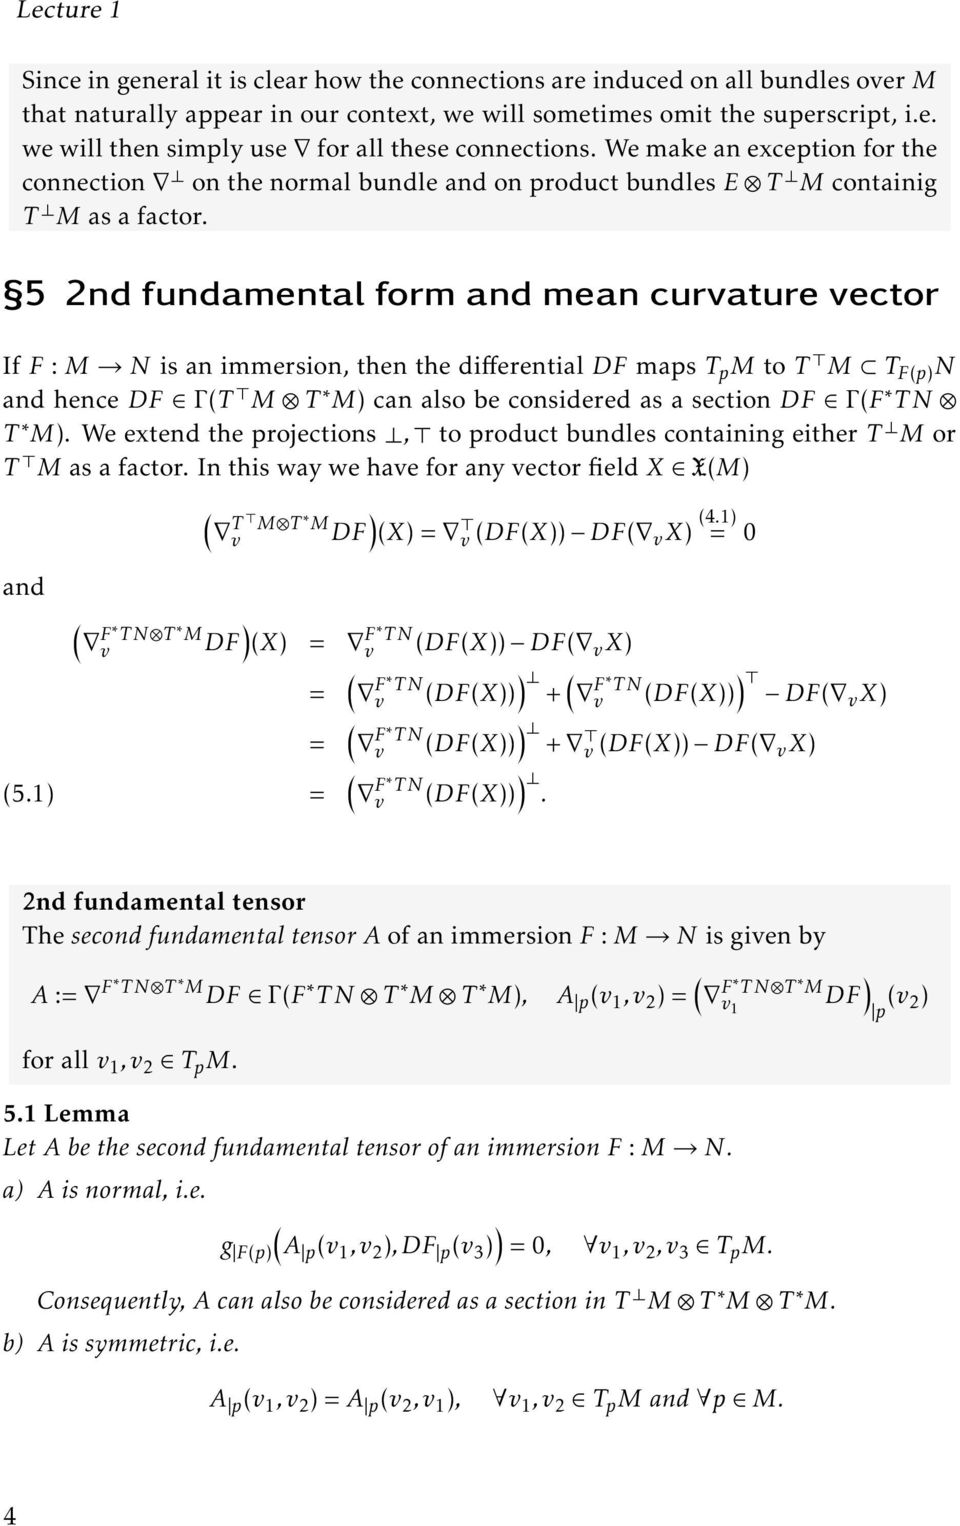 5 2nd fundamental form and mean curvature vector If F : M N is an immersion, then the differential DF maps T p M to T M T F(p) N and hence DF Γ (T M T M) can also be considered as a section DF Γ (F T